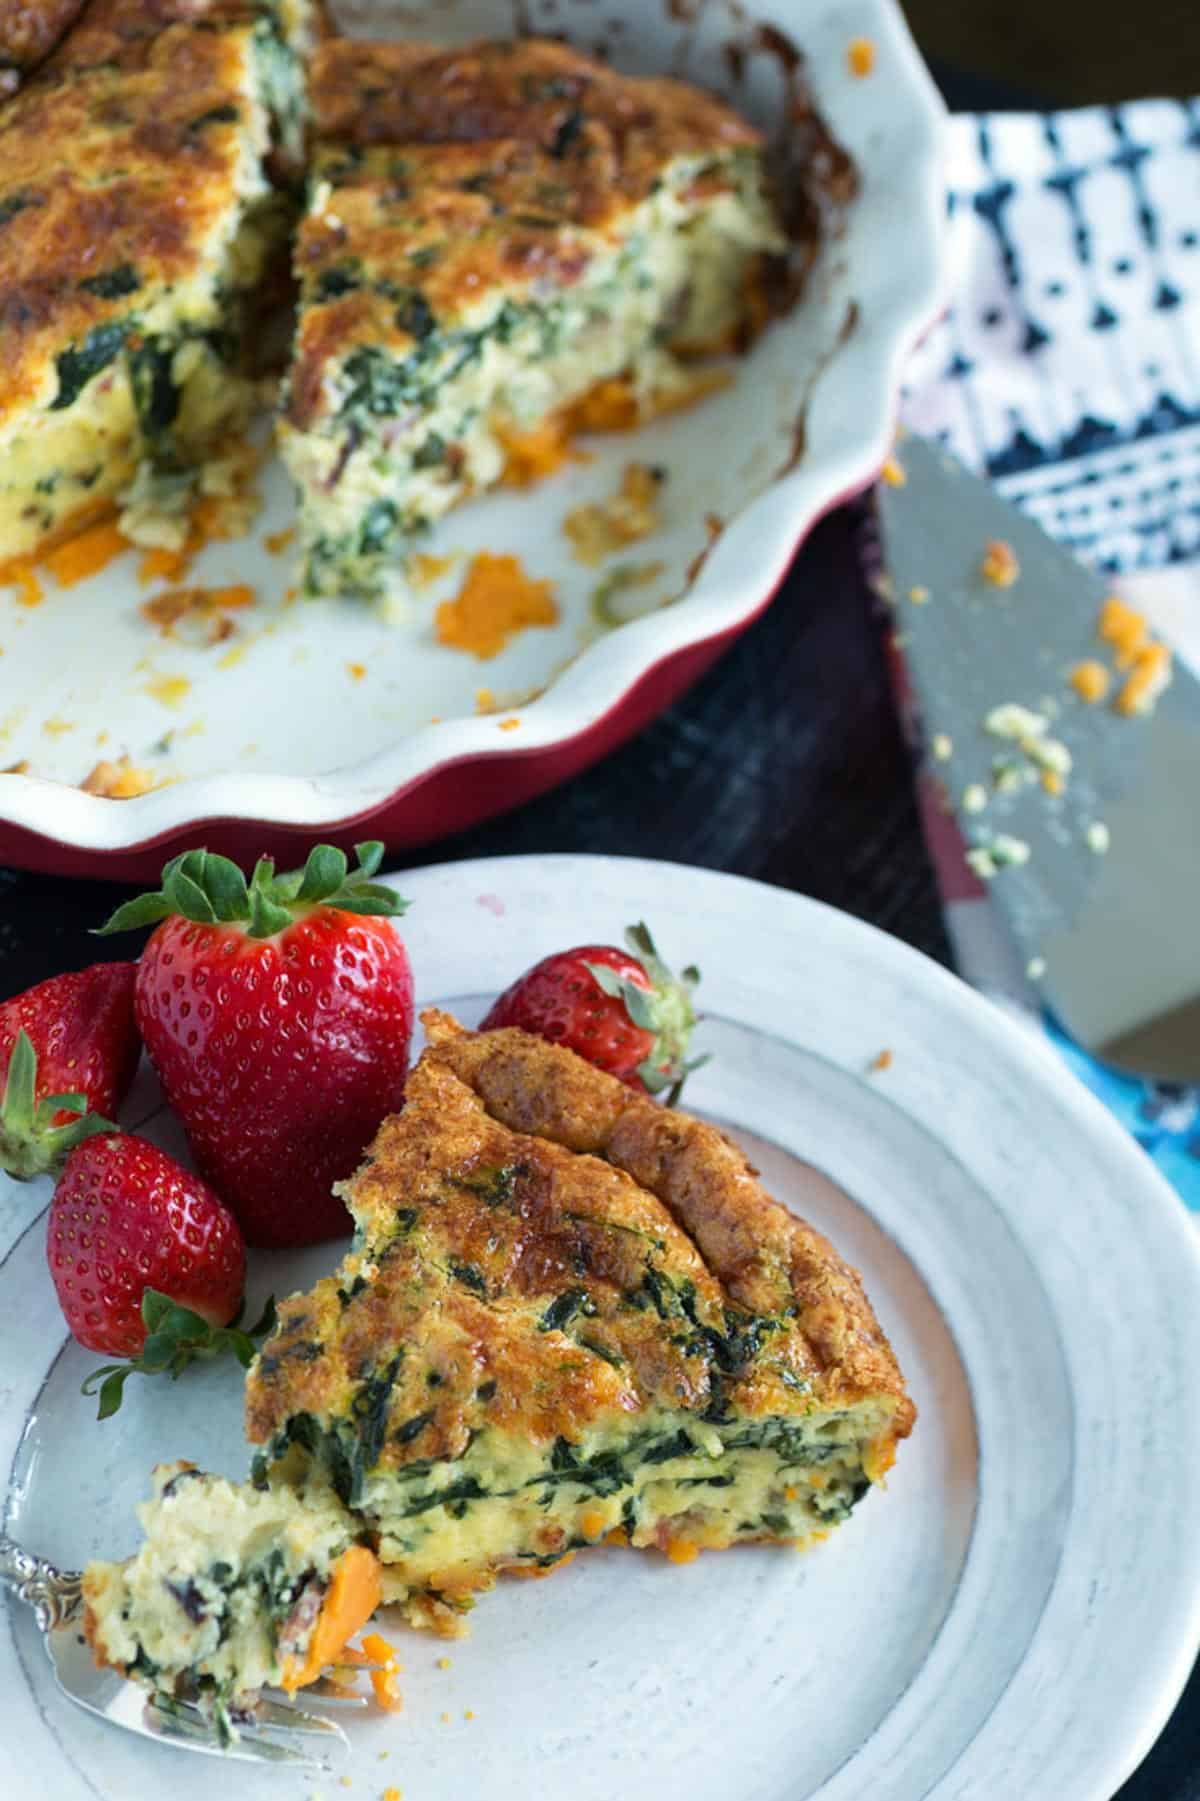 A slice of sweet potato crust quiche with a strawberry